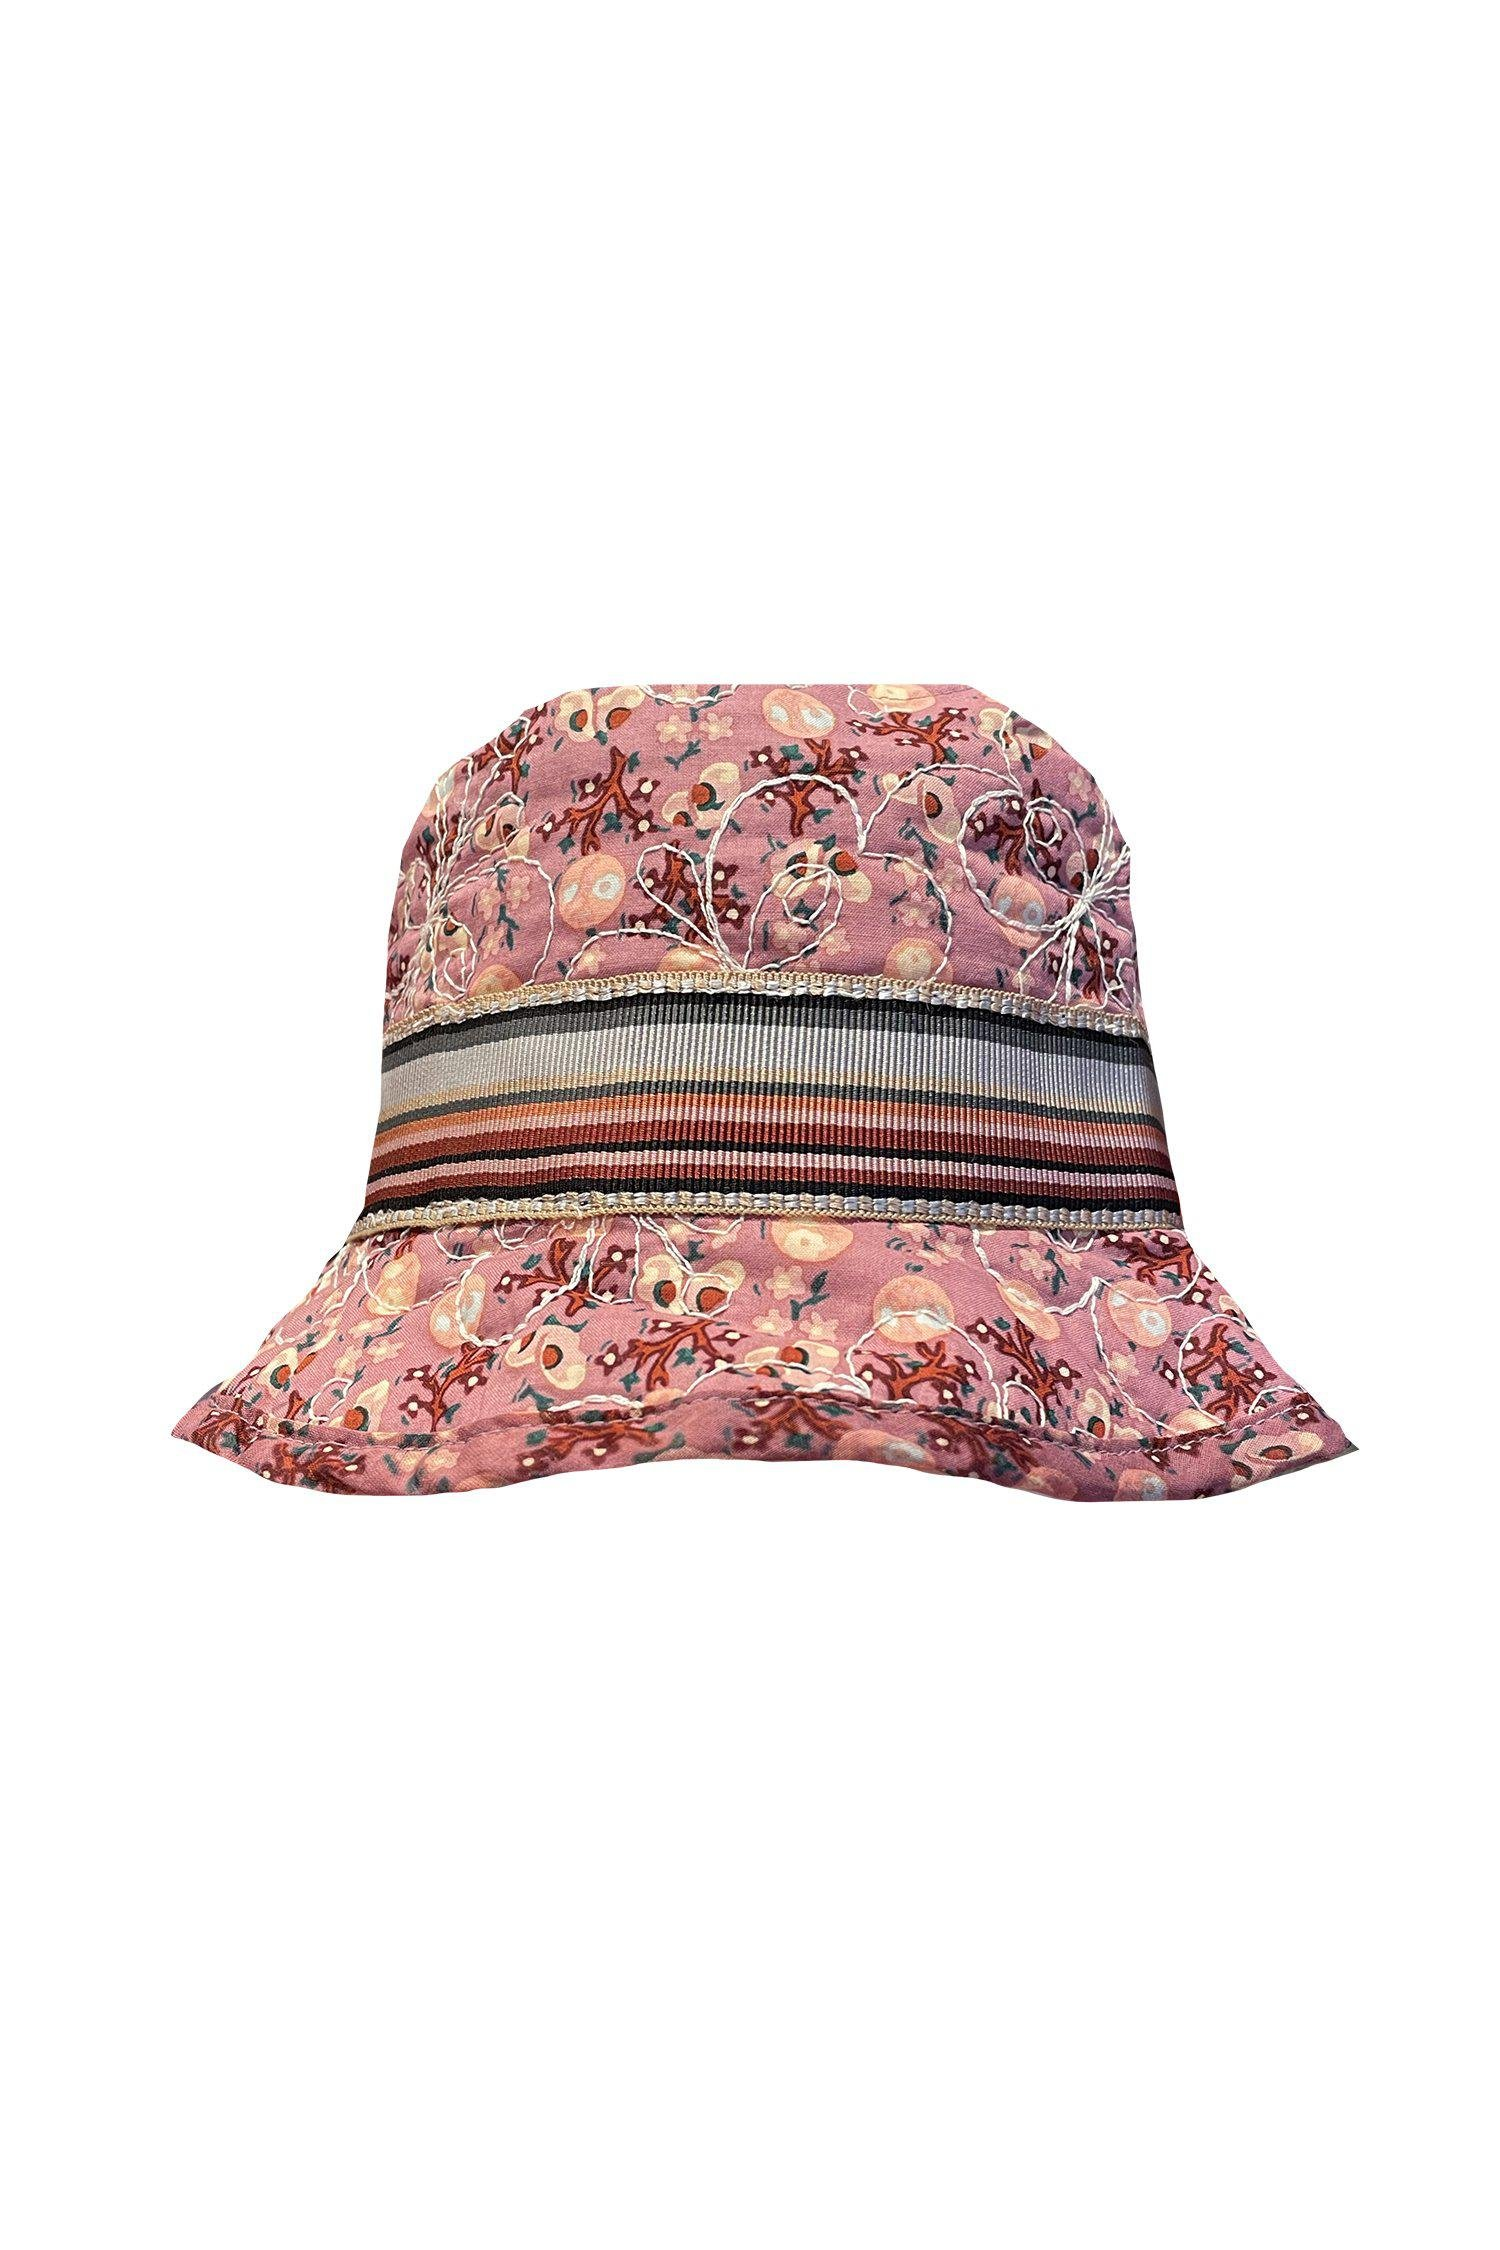 Butterfly Meadows Quilted Bucket Hat